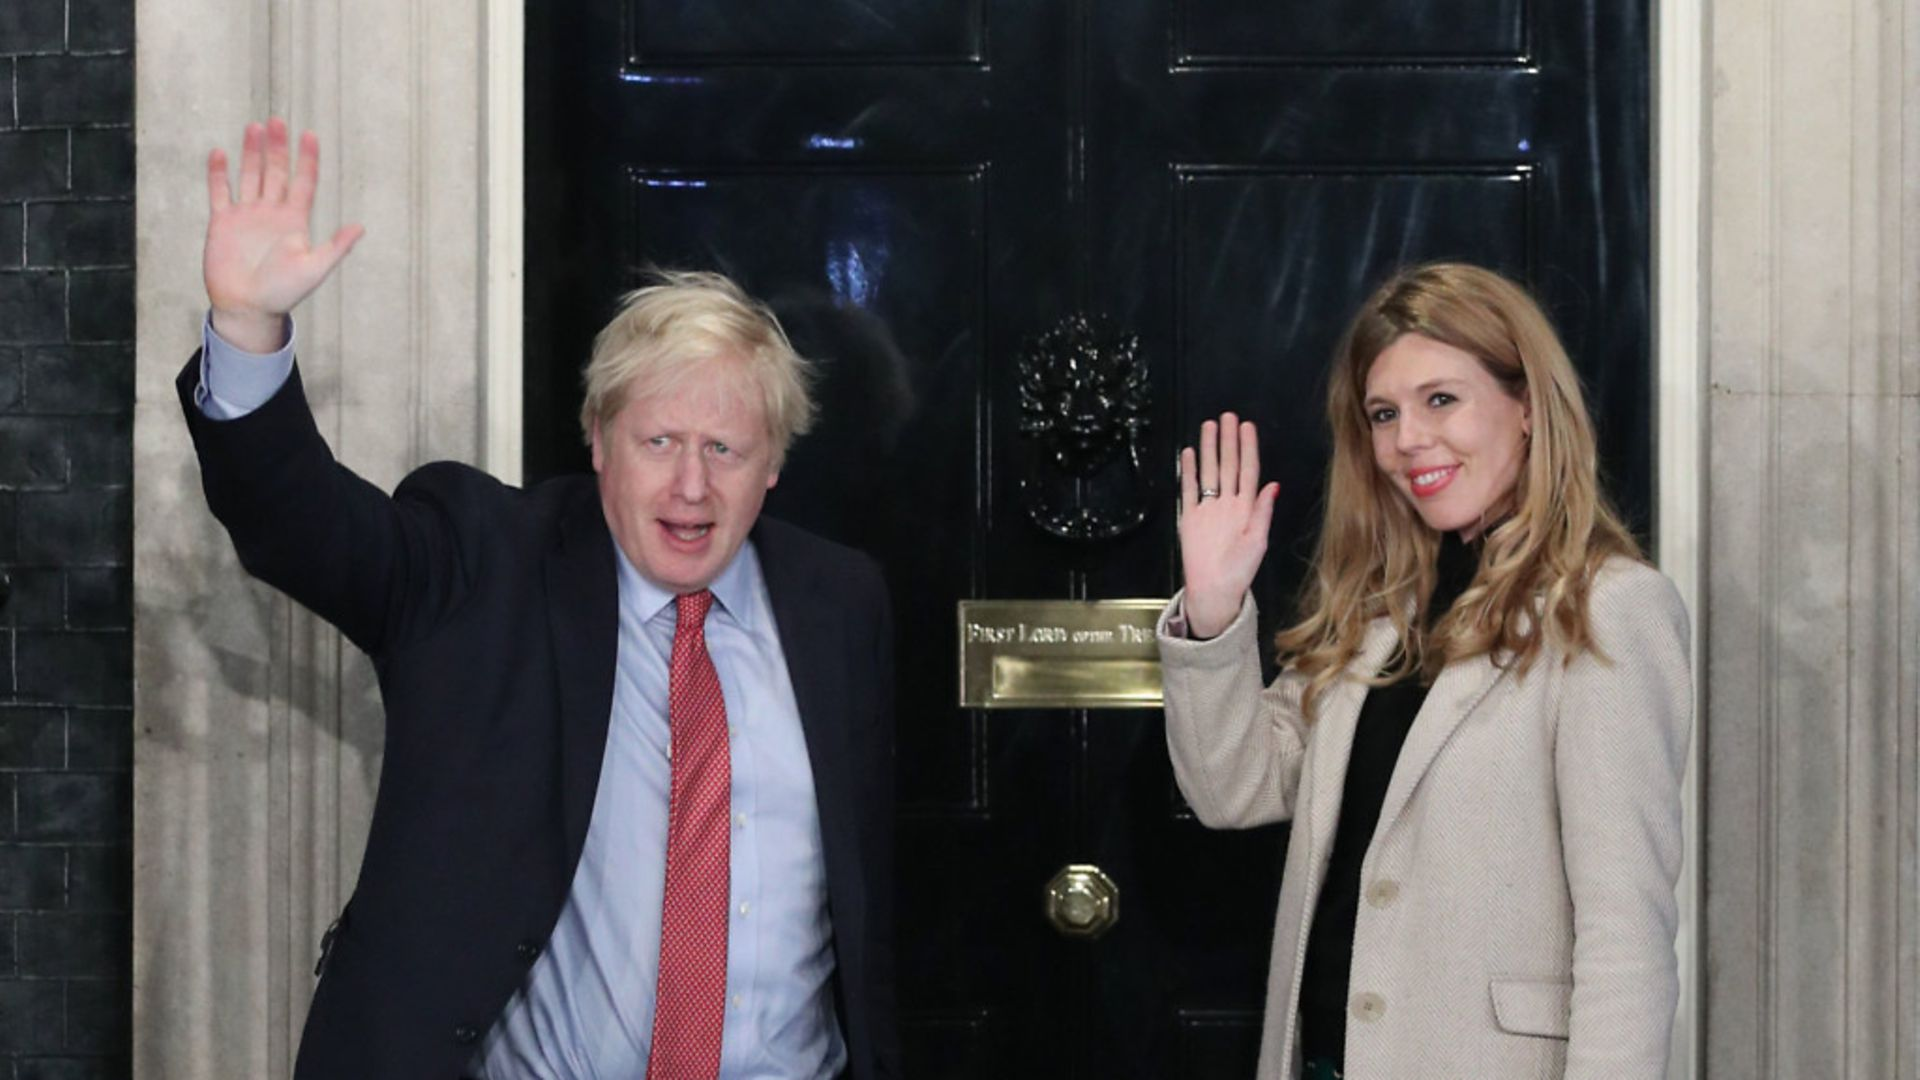 Prime minister Boris Johnson with fiancée Carrie Symonds outside No 10 - Credit: PA